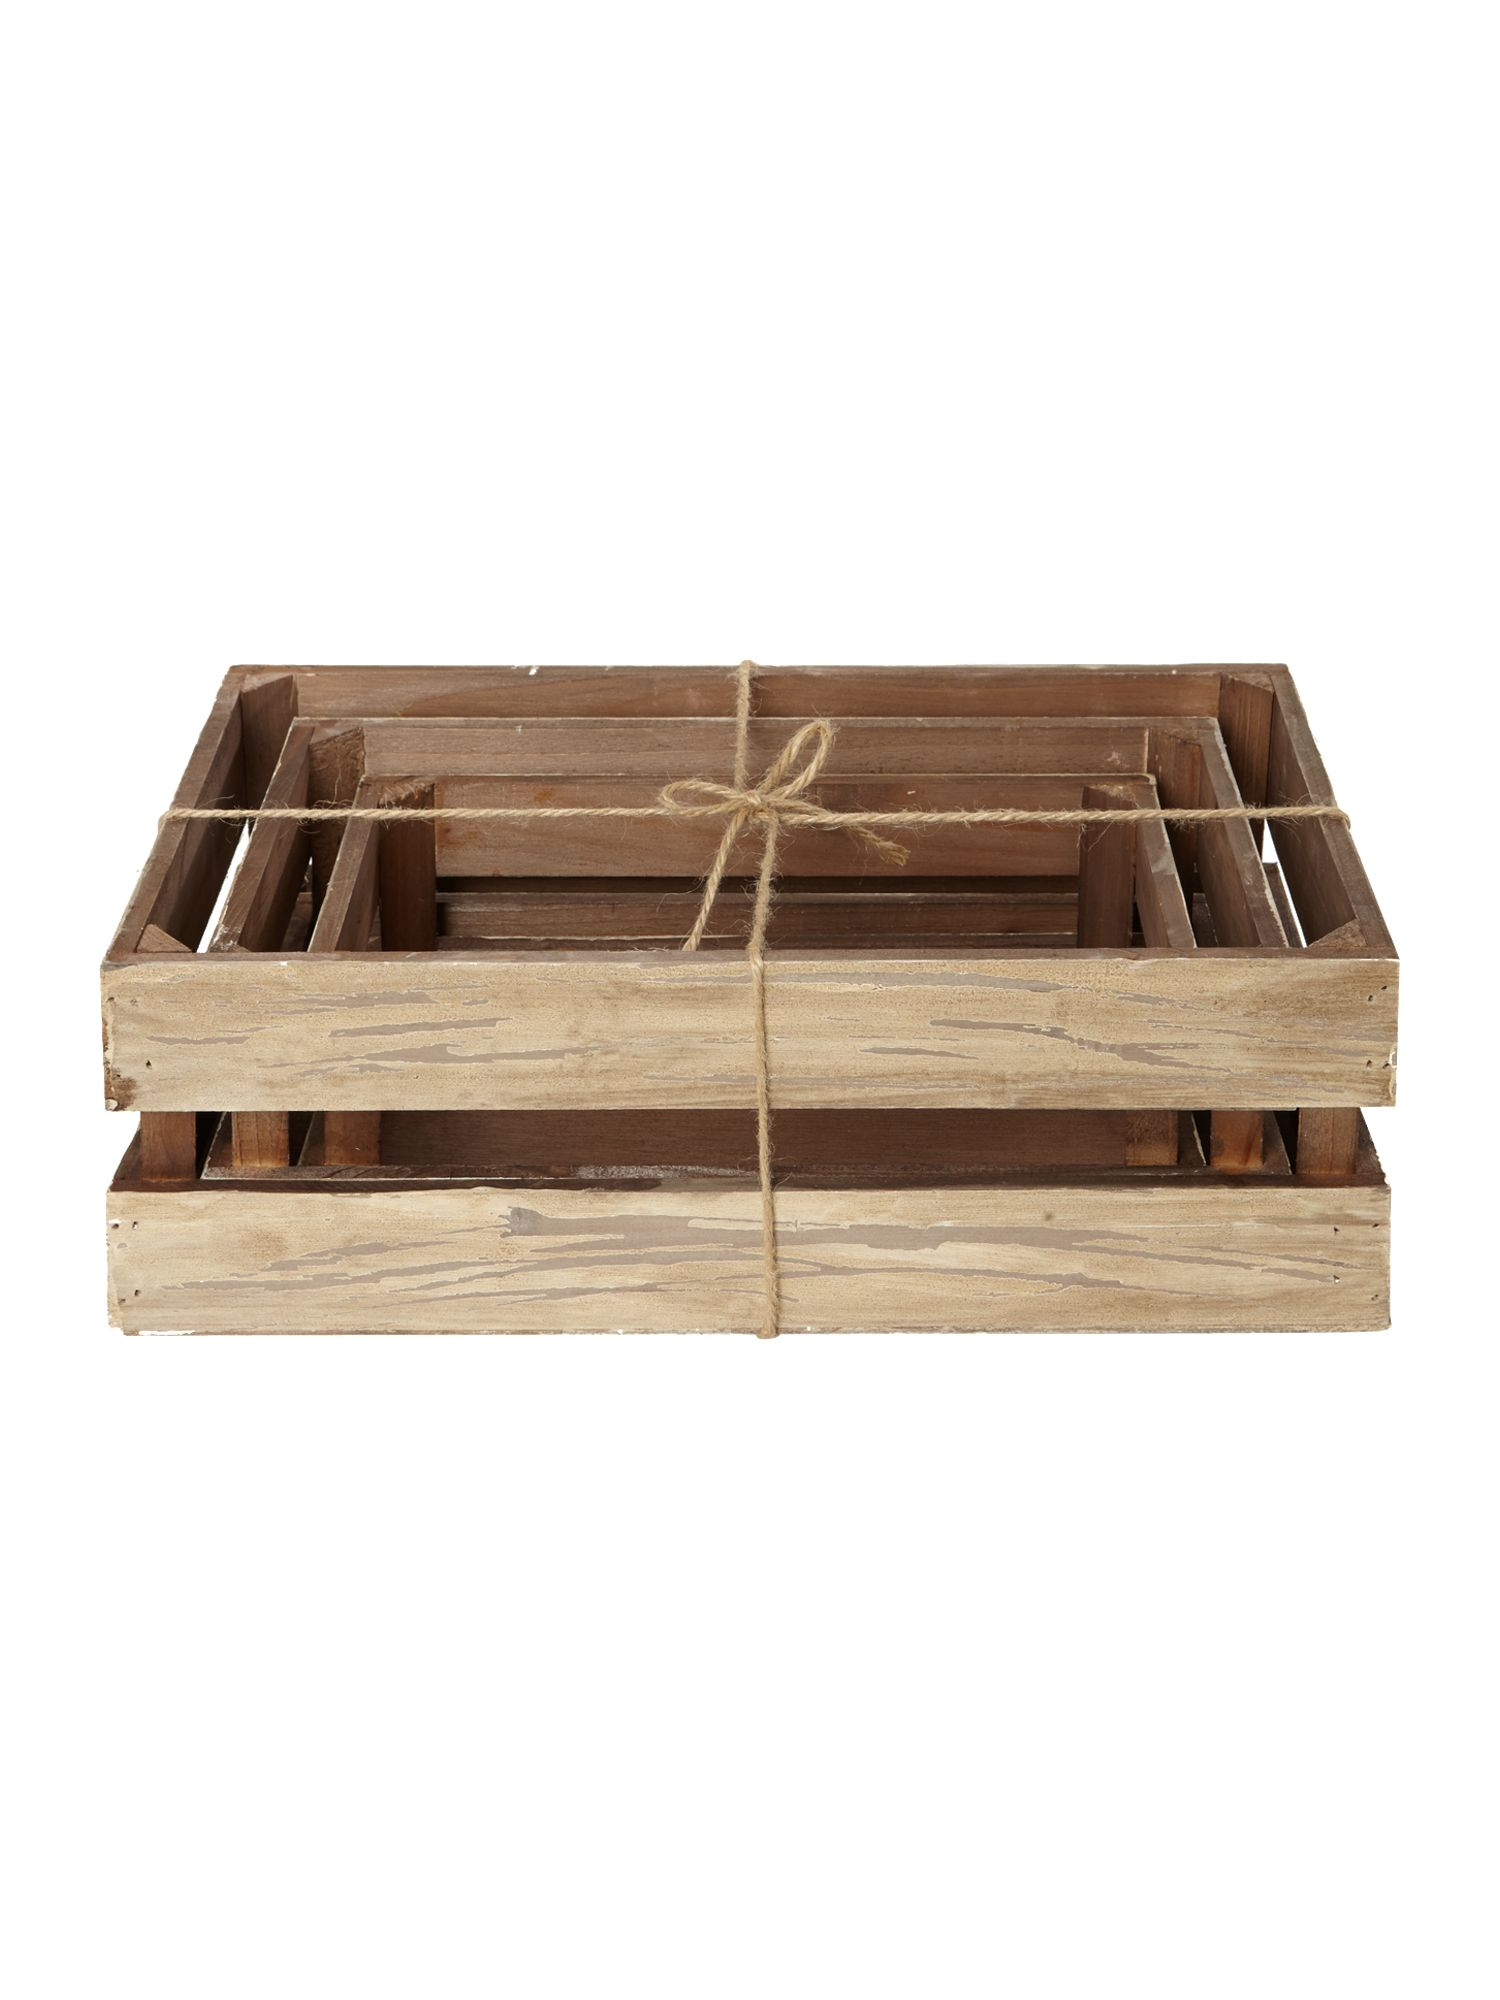 Set of 3 wooden crates